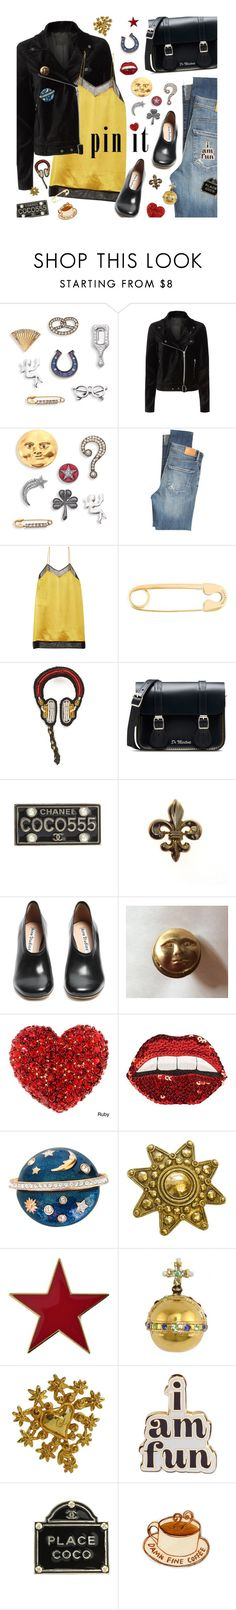 """""""Pins With Personality"""" by magdafunk ❤ liked on Polyvore featuring Marc Jacobs, Paige Denim, Citizens of Humanity, Gucci, True Rocks, Macon & Lesquoy, Dr. Martens, Chanel, Acne Studios and Happy Embellishments"""